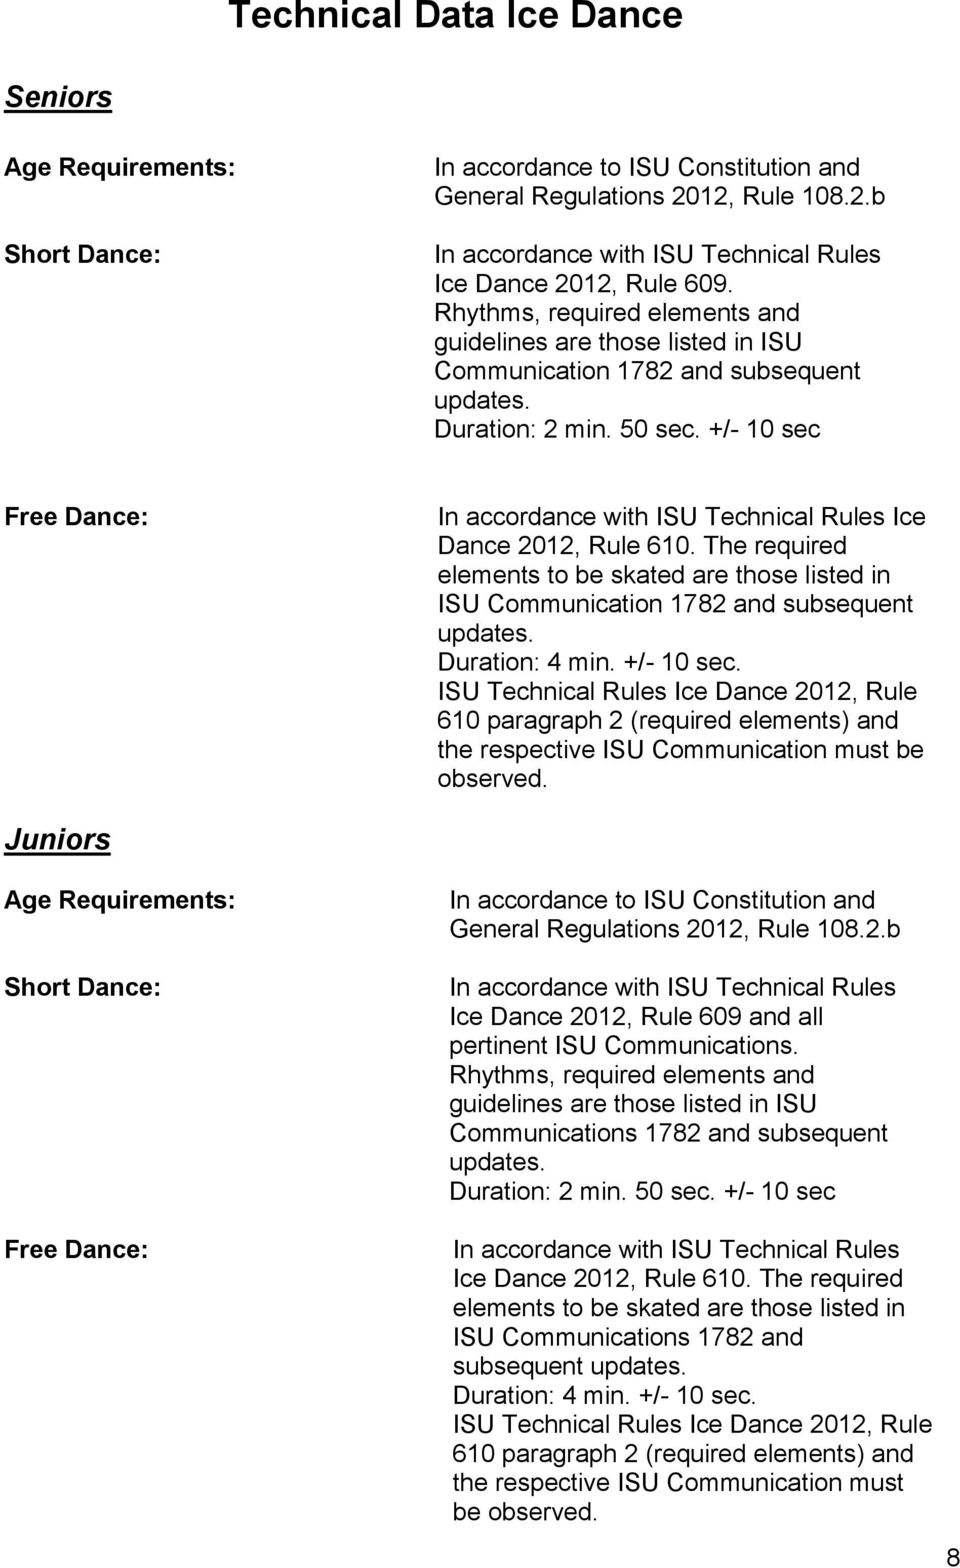 +/- 10 sec Free Dance: In accordance with ISU Technical Rules Ice Dance 2012, Rule 610. The required elements to be skated are those listed in ISU Communication 1782 and subsequent updates.